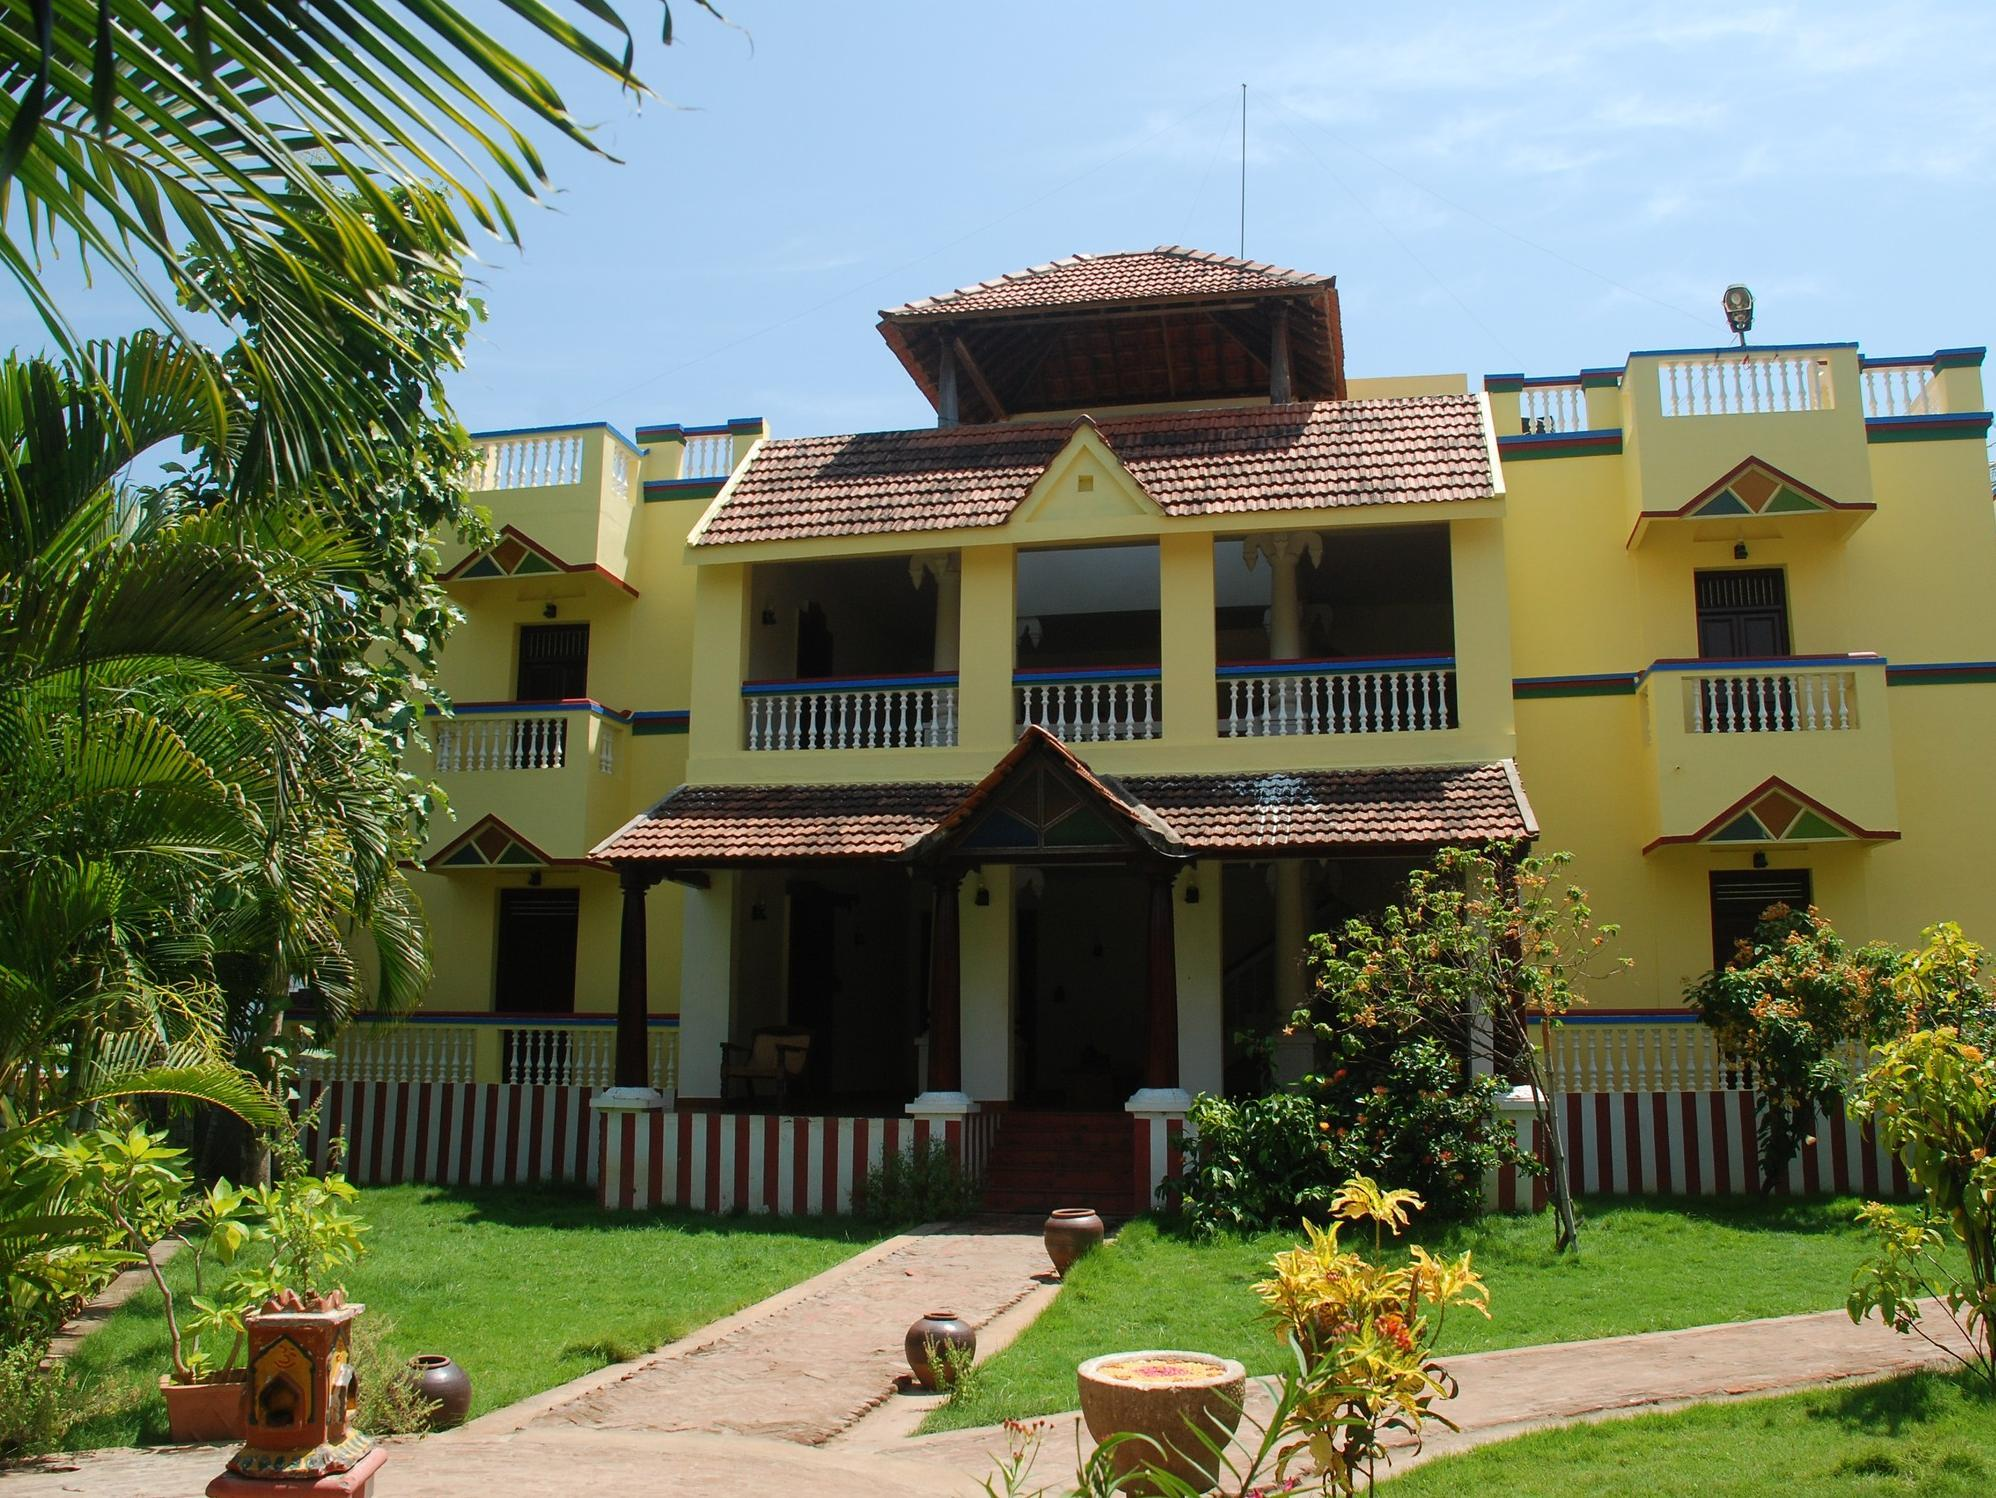 Paradise Resorts - Hotel and accommodation in India in Kumbakonam